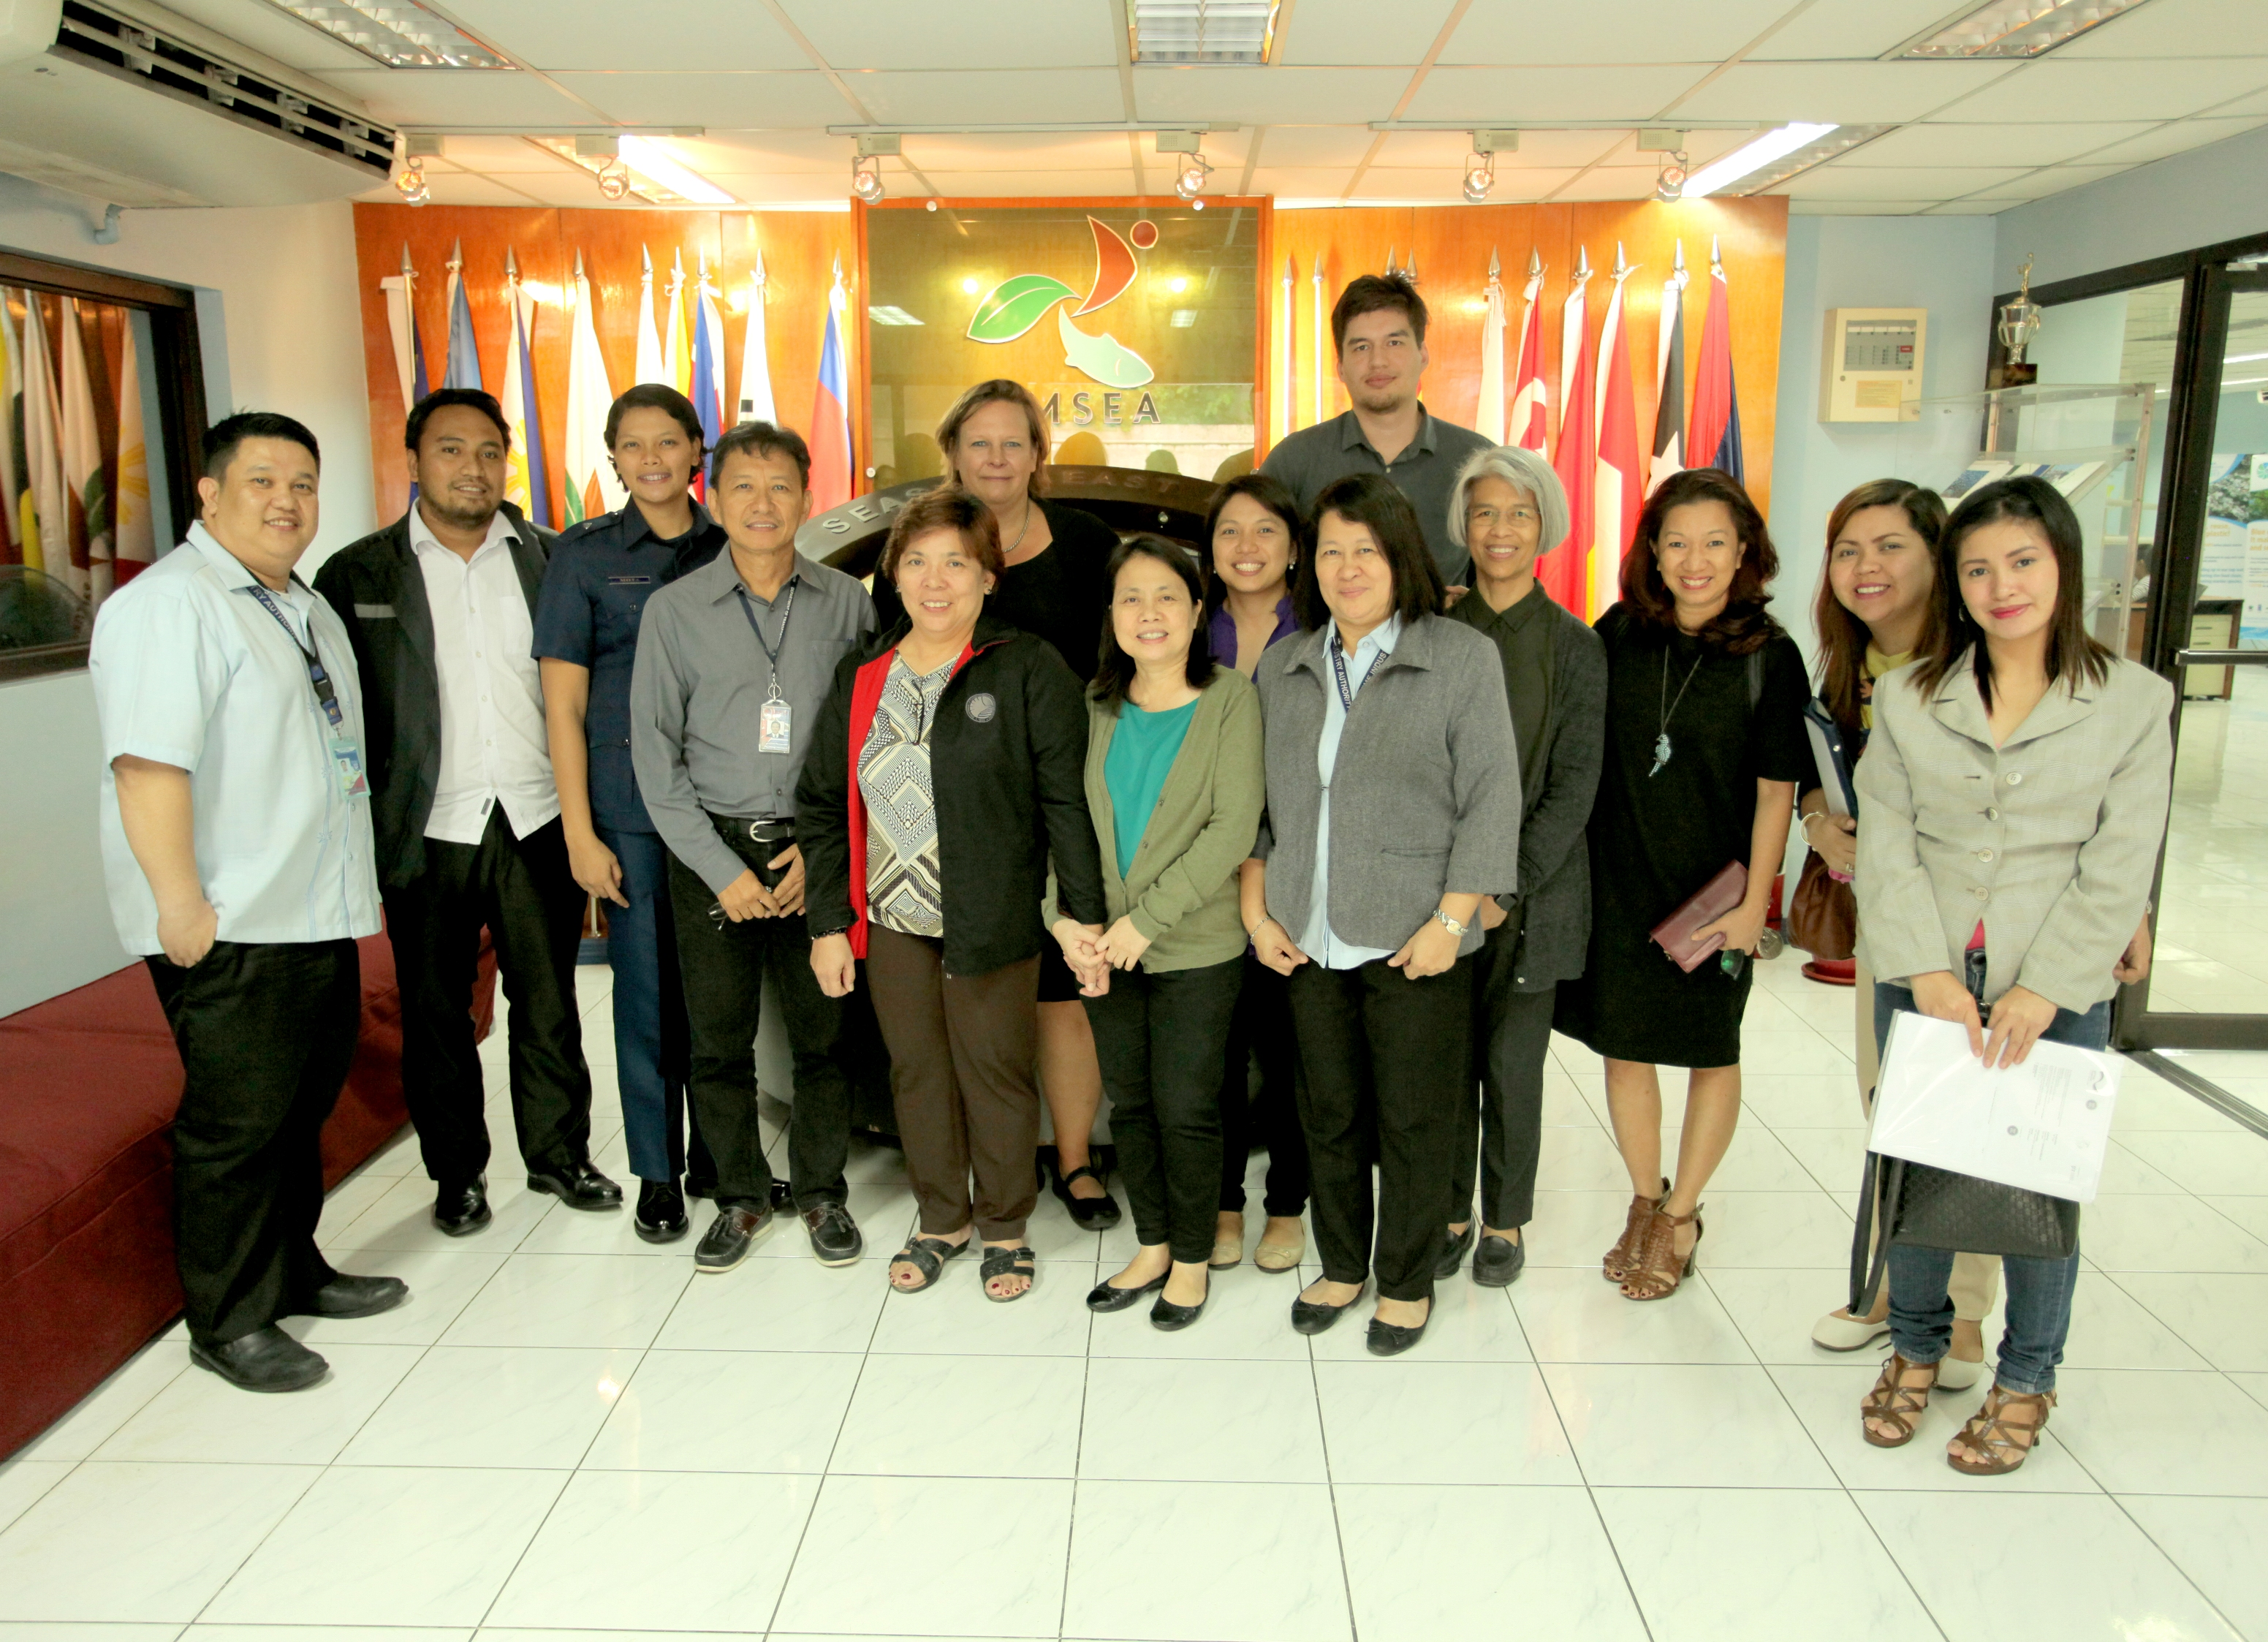 Participants of the Blue Solutions focus group meeting